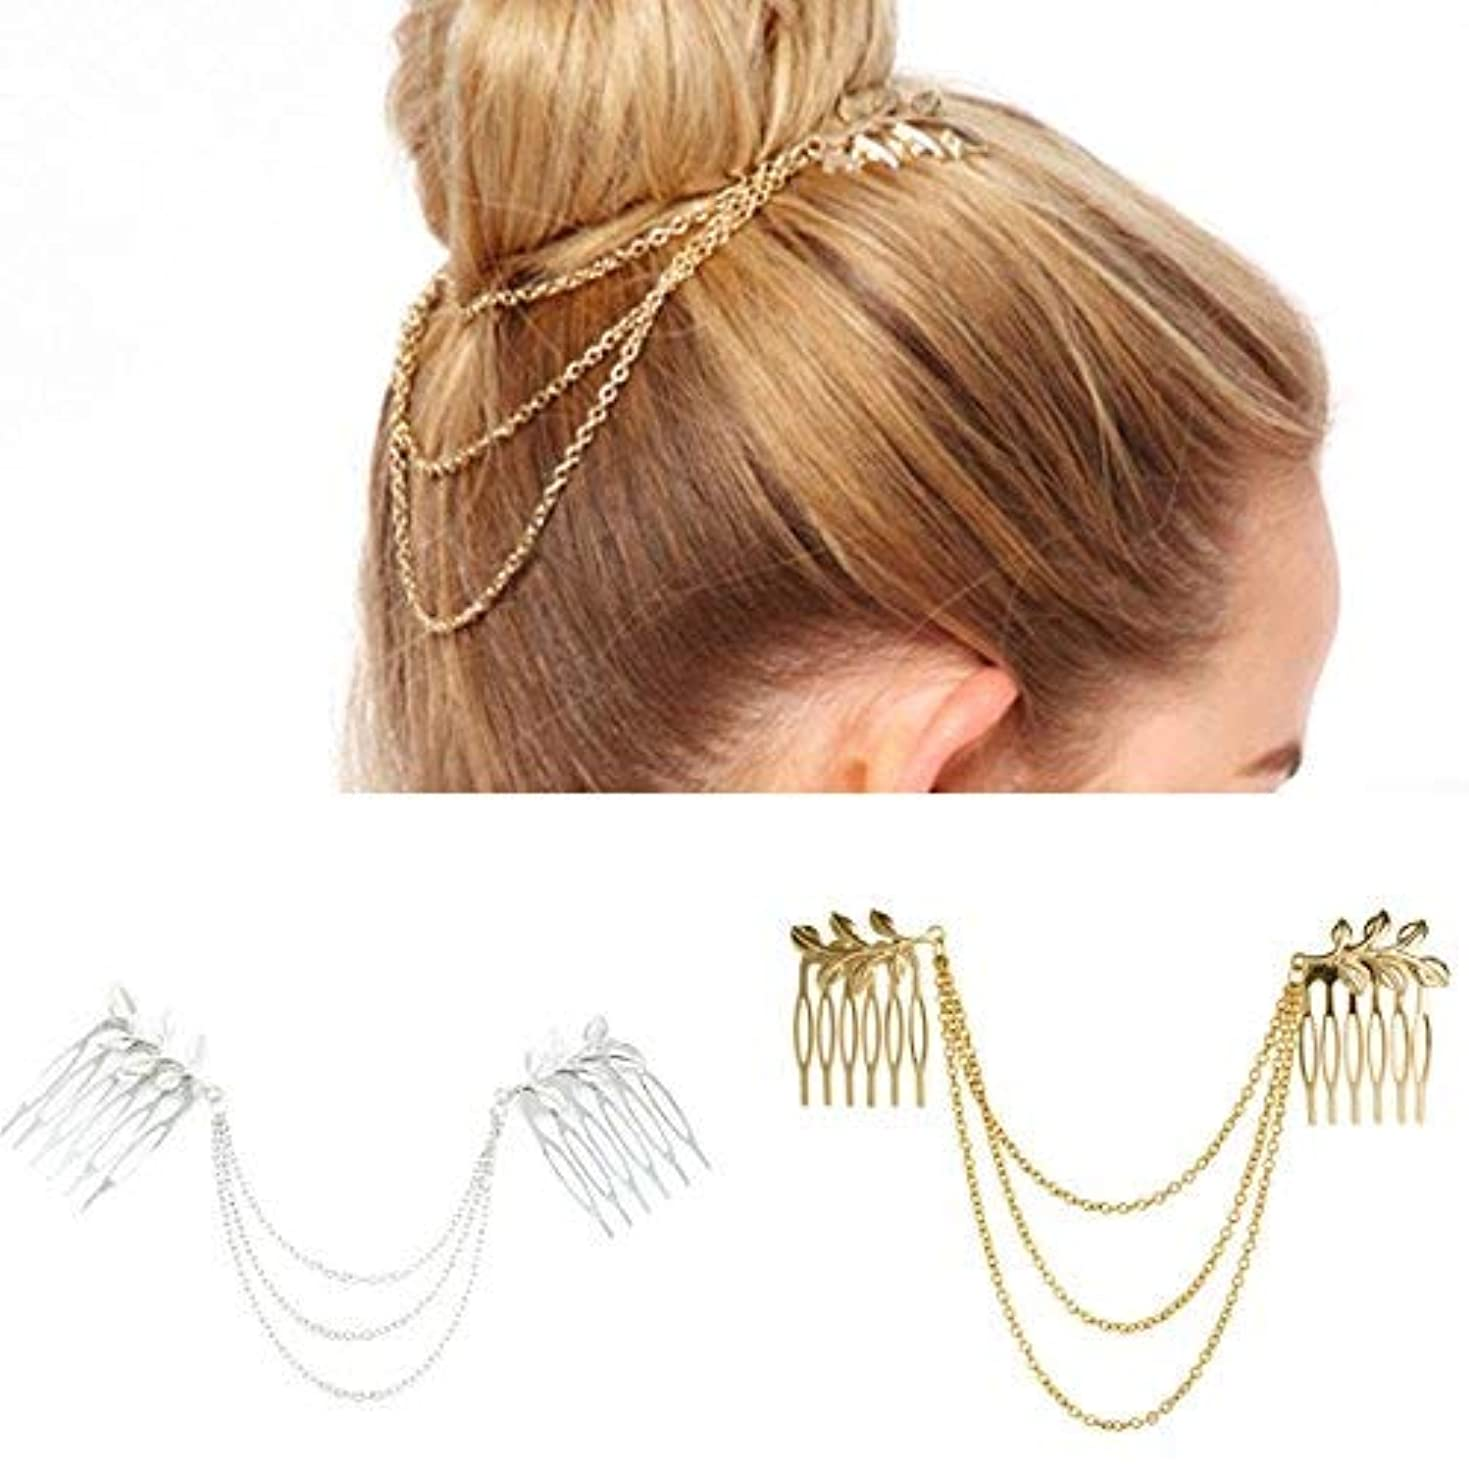 芝生生まれ小康Numblartd 2 Pcs Women BOHO Chic Metal Leaf Chain Tassel Headband Hair Comb - Fashion Fringe Hair Clip Pins Hairpin...